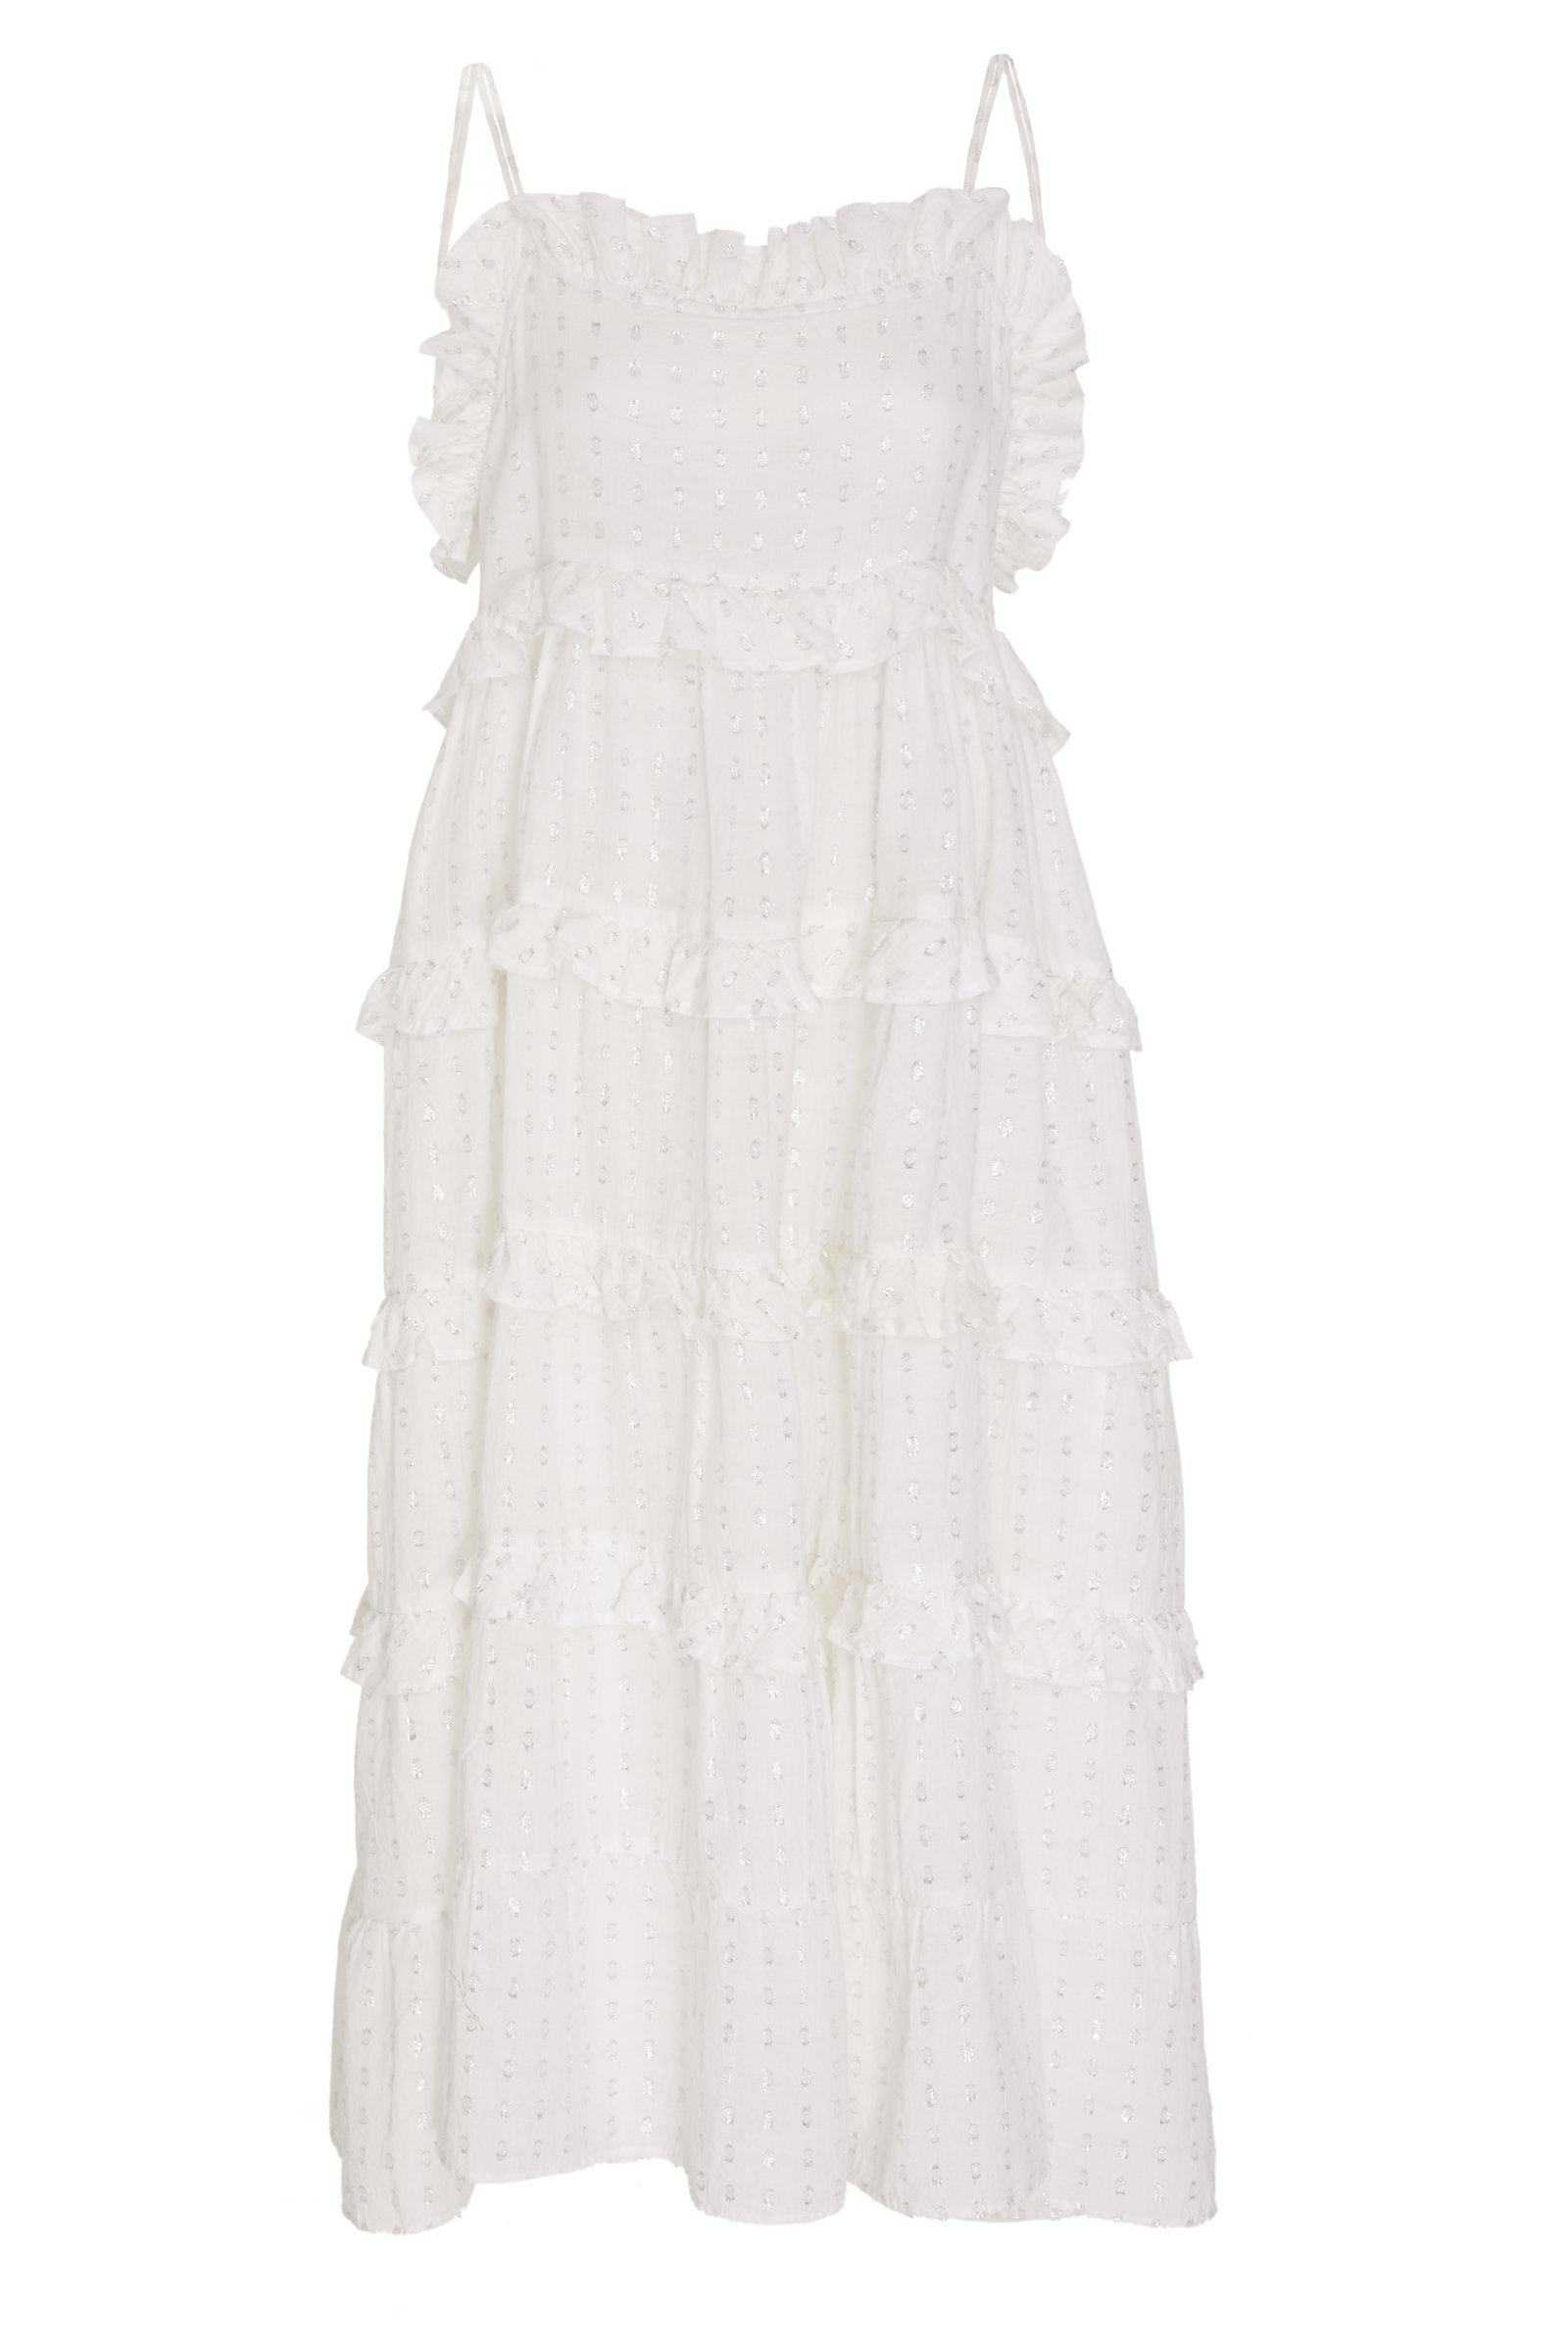 RAE FEATHER M'O EXCLUSIVE FRILL DRESS